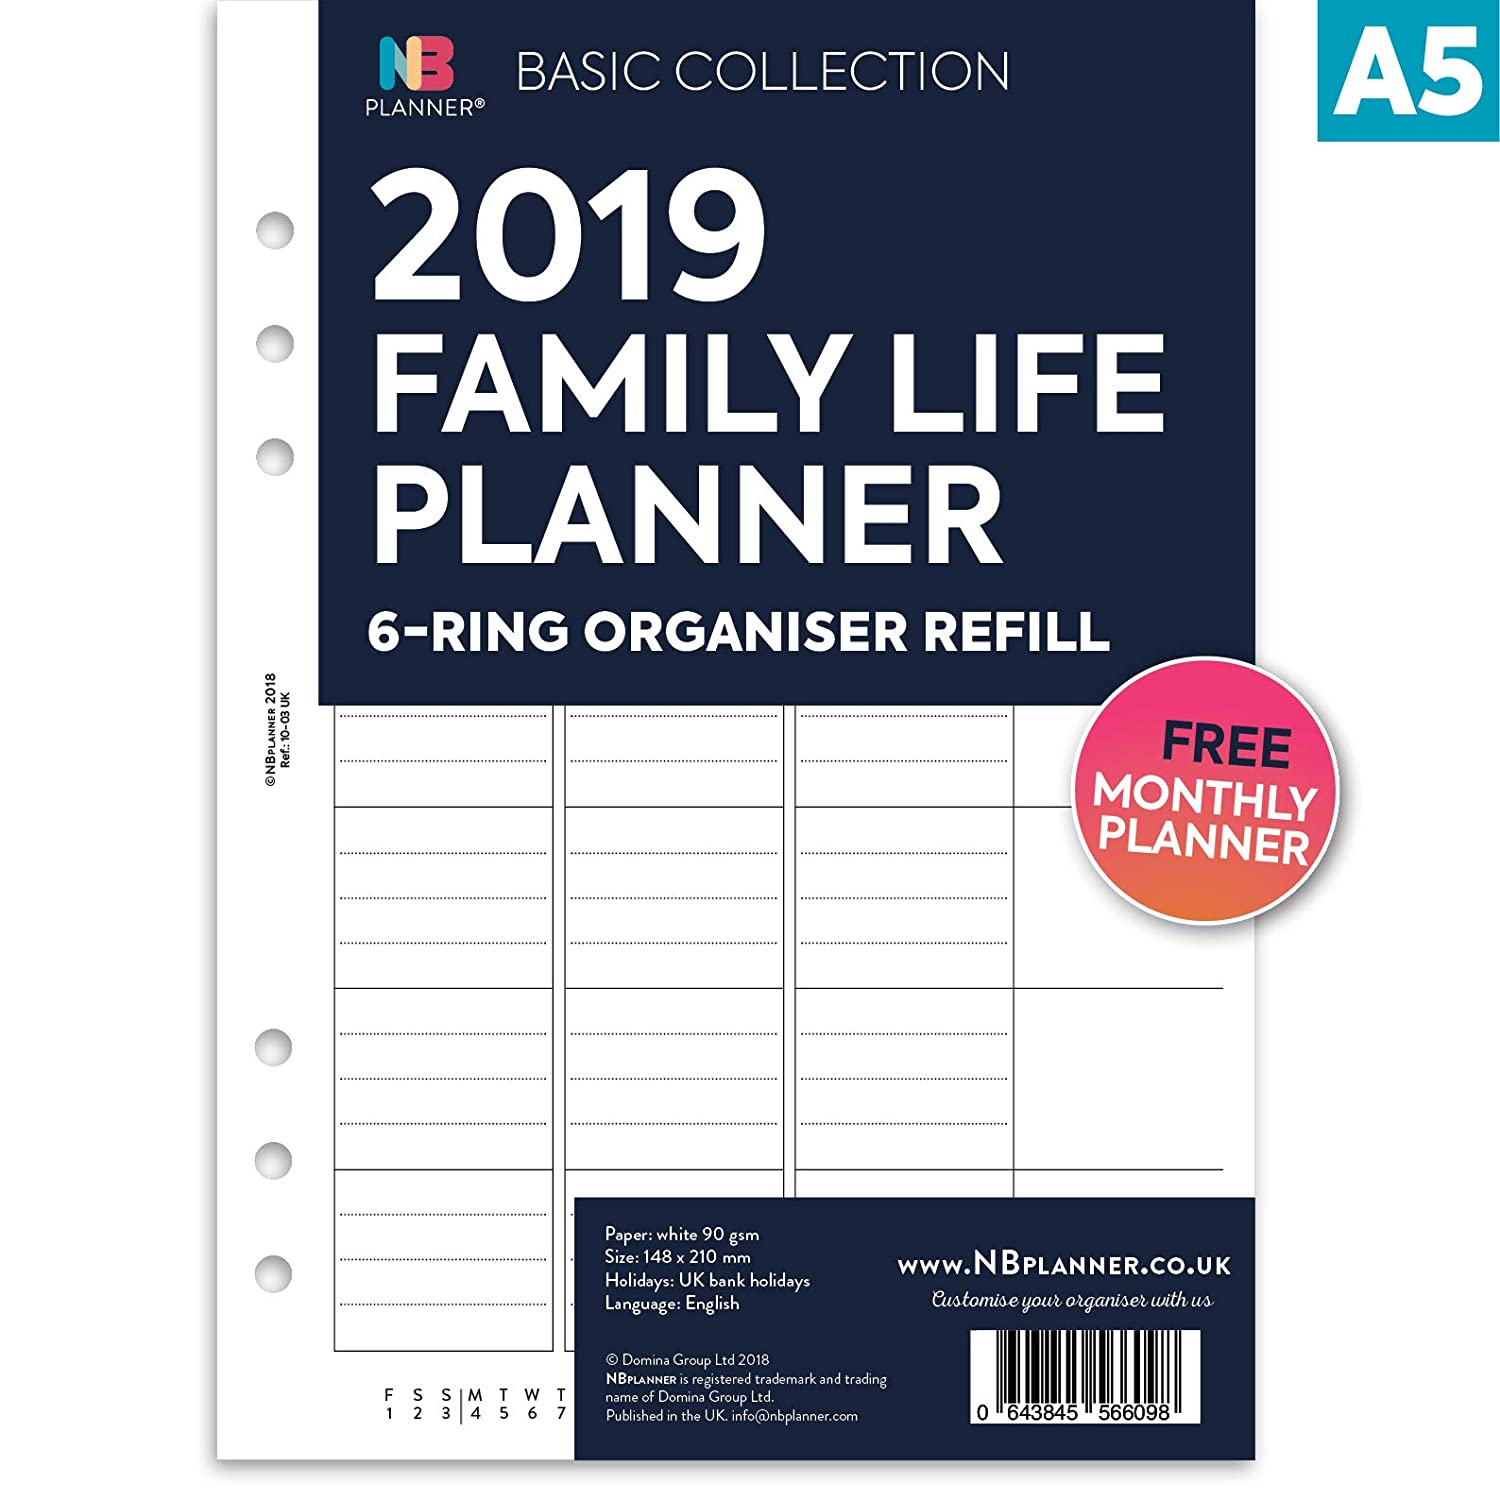 NBplanner® 2019 Family Life Planner Basic Collection English Organiser Refill A5 Size Domina Group Ltd